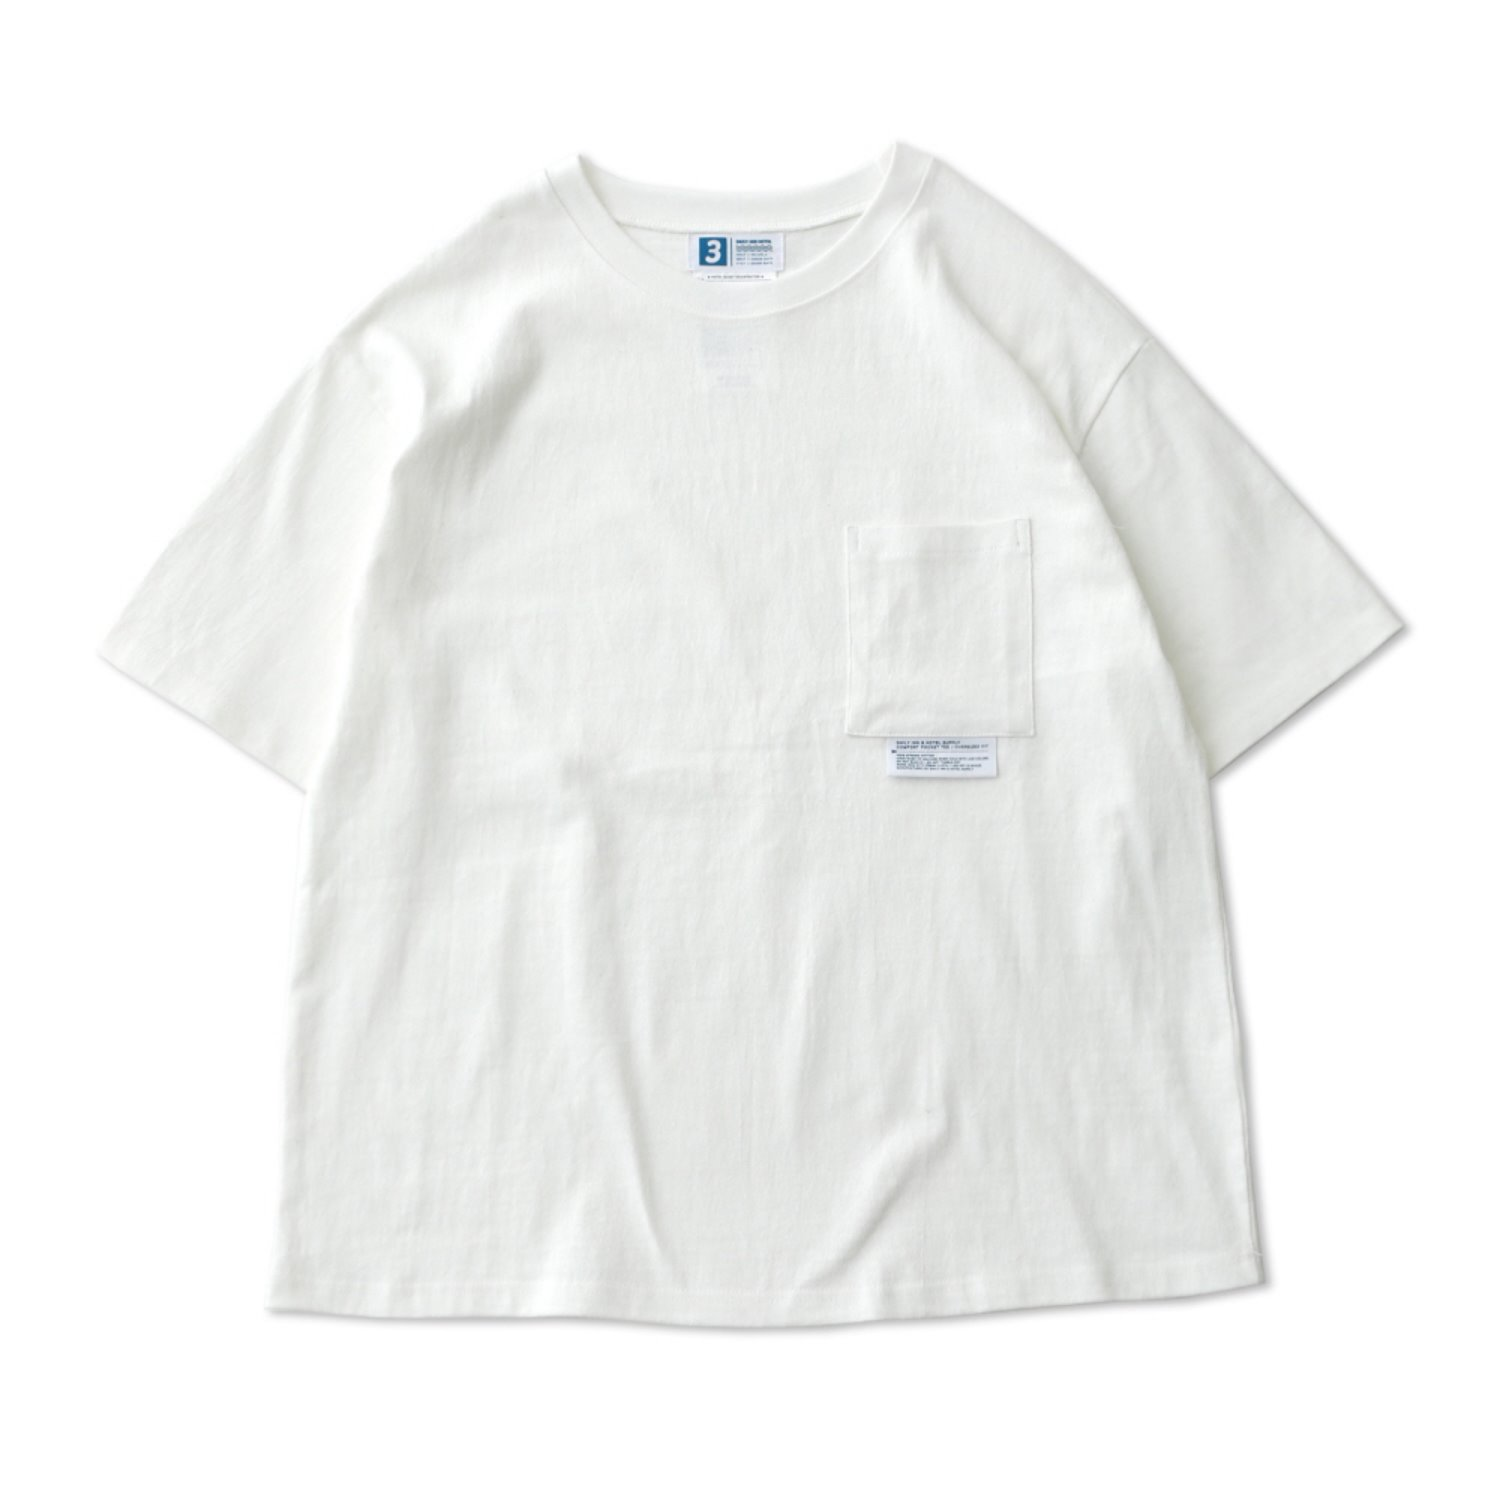 DailyInn Tourist Comfortable Oversized Pocket Tee (White)